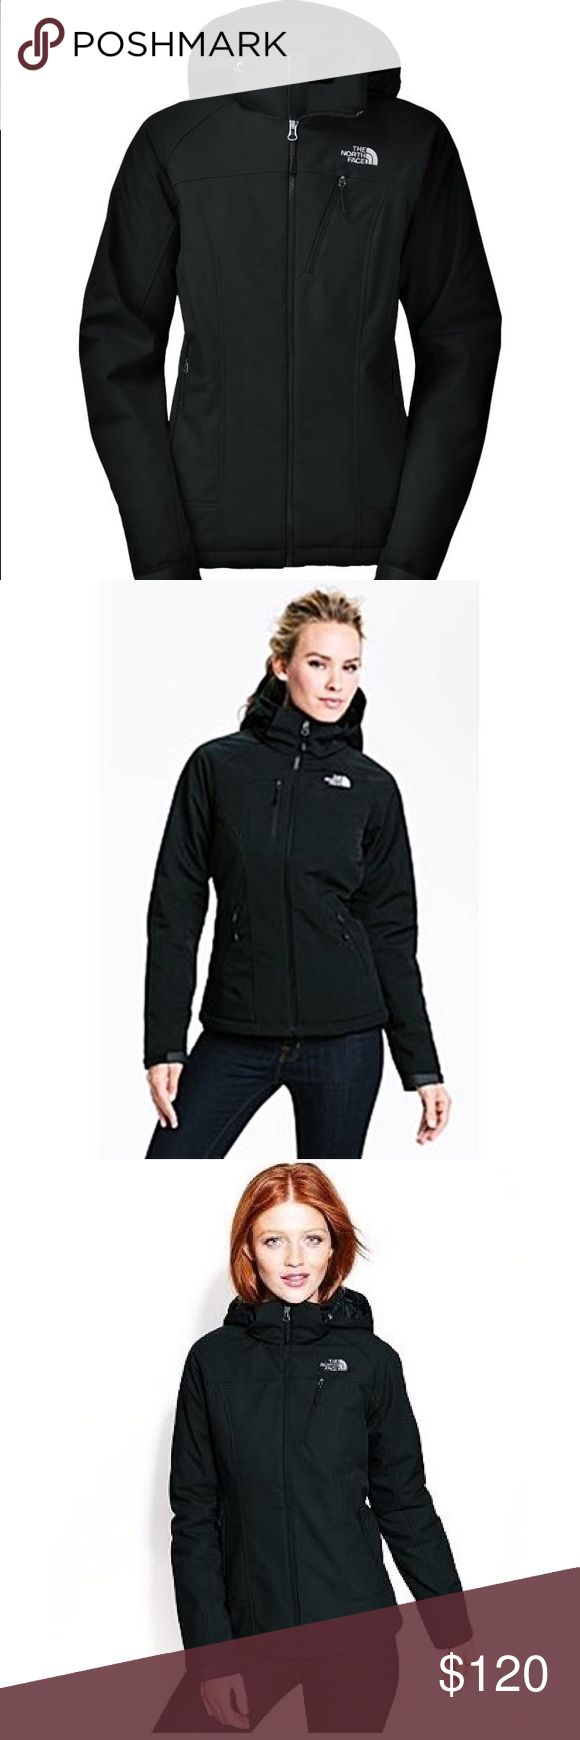 North Face Apex Black Winter Coat Jacket Northface Great coat! Size M. Excellent condition The North Face Jackets & Coats